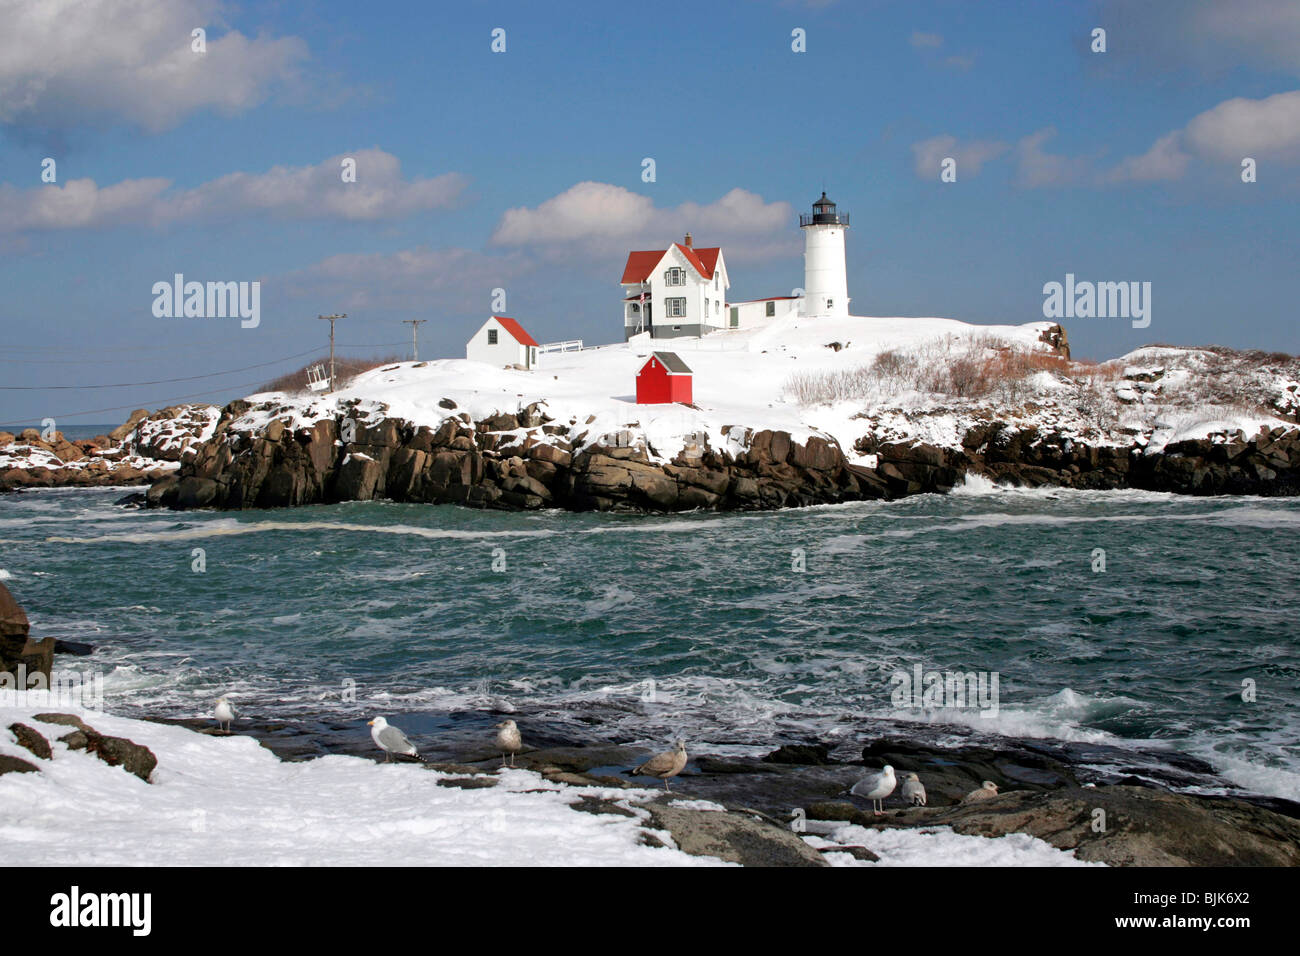 Enjoyable Nubble Light Lighthouse Winter Snow York Maine New Download Free Architecture Designs Scobabritishbridgeorg